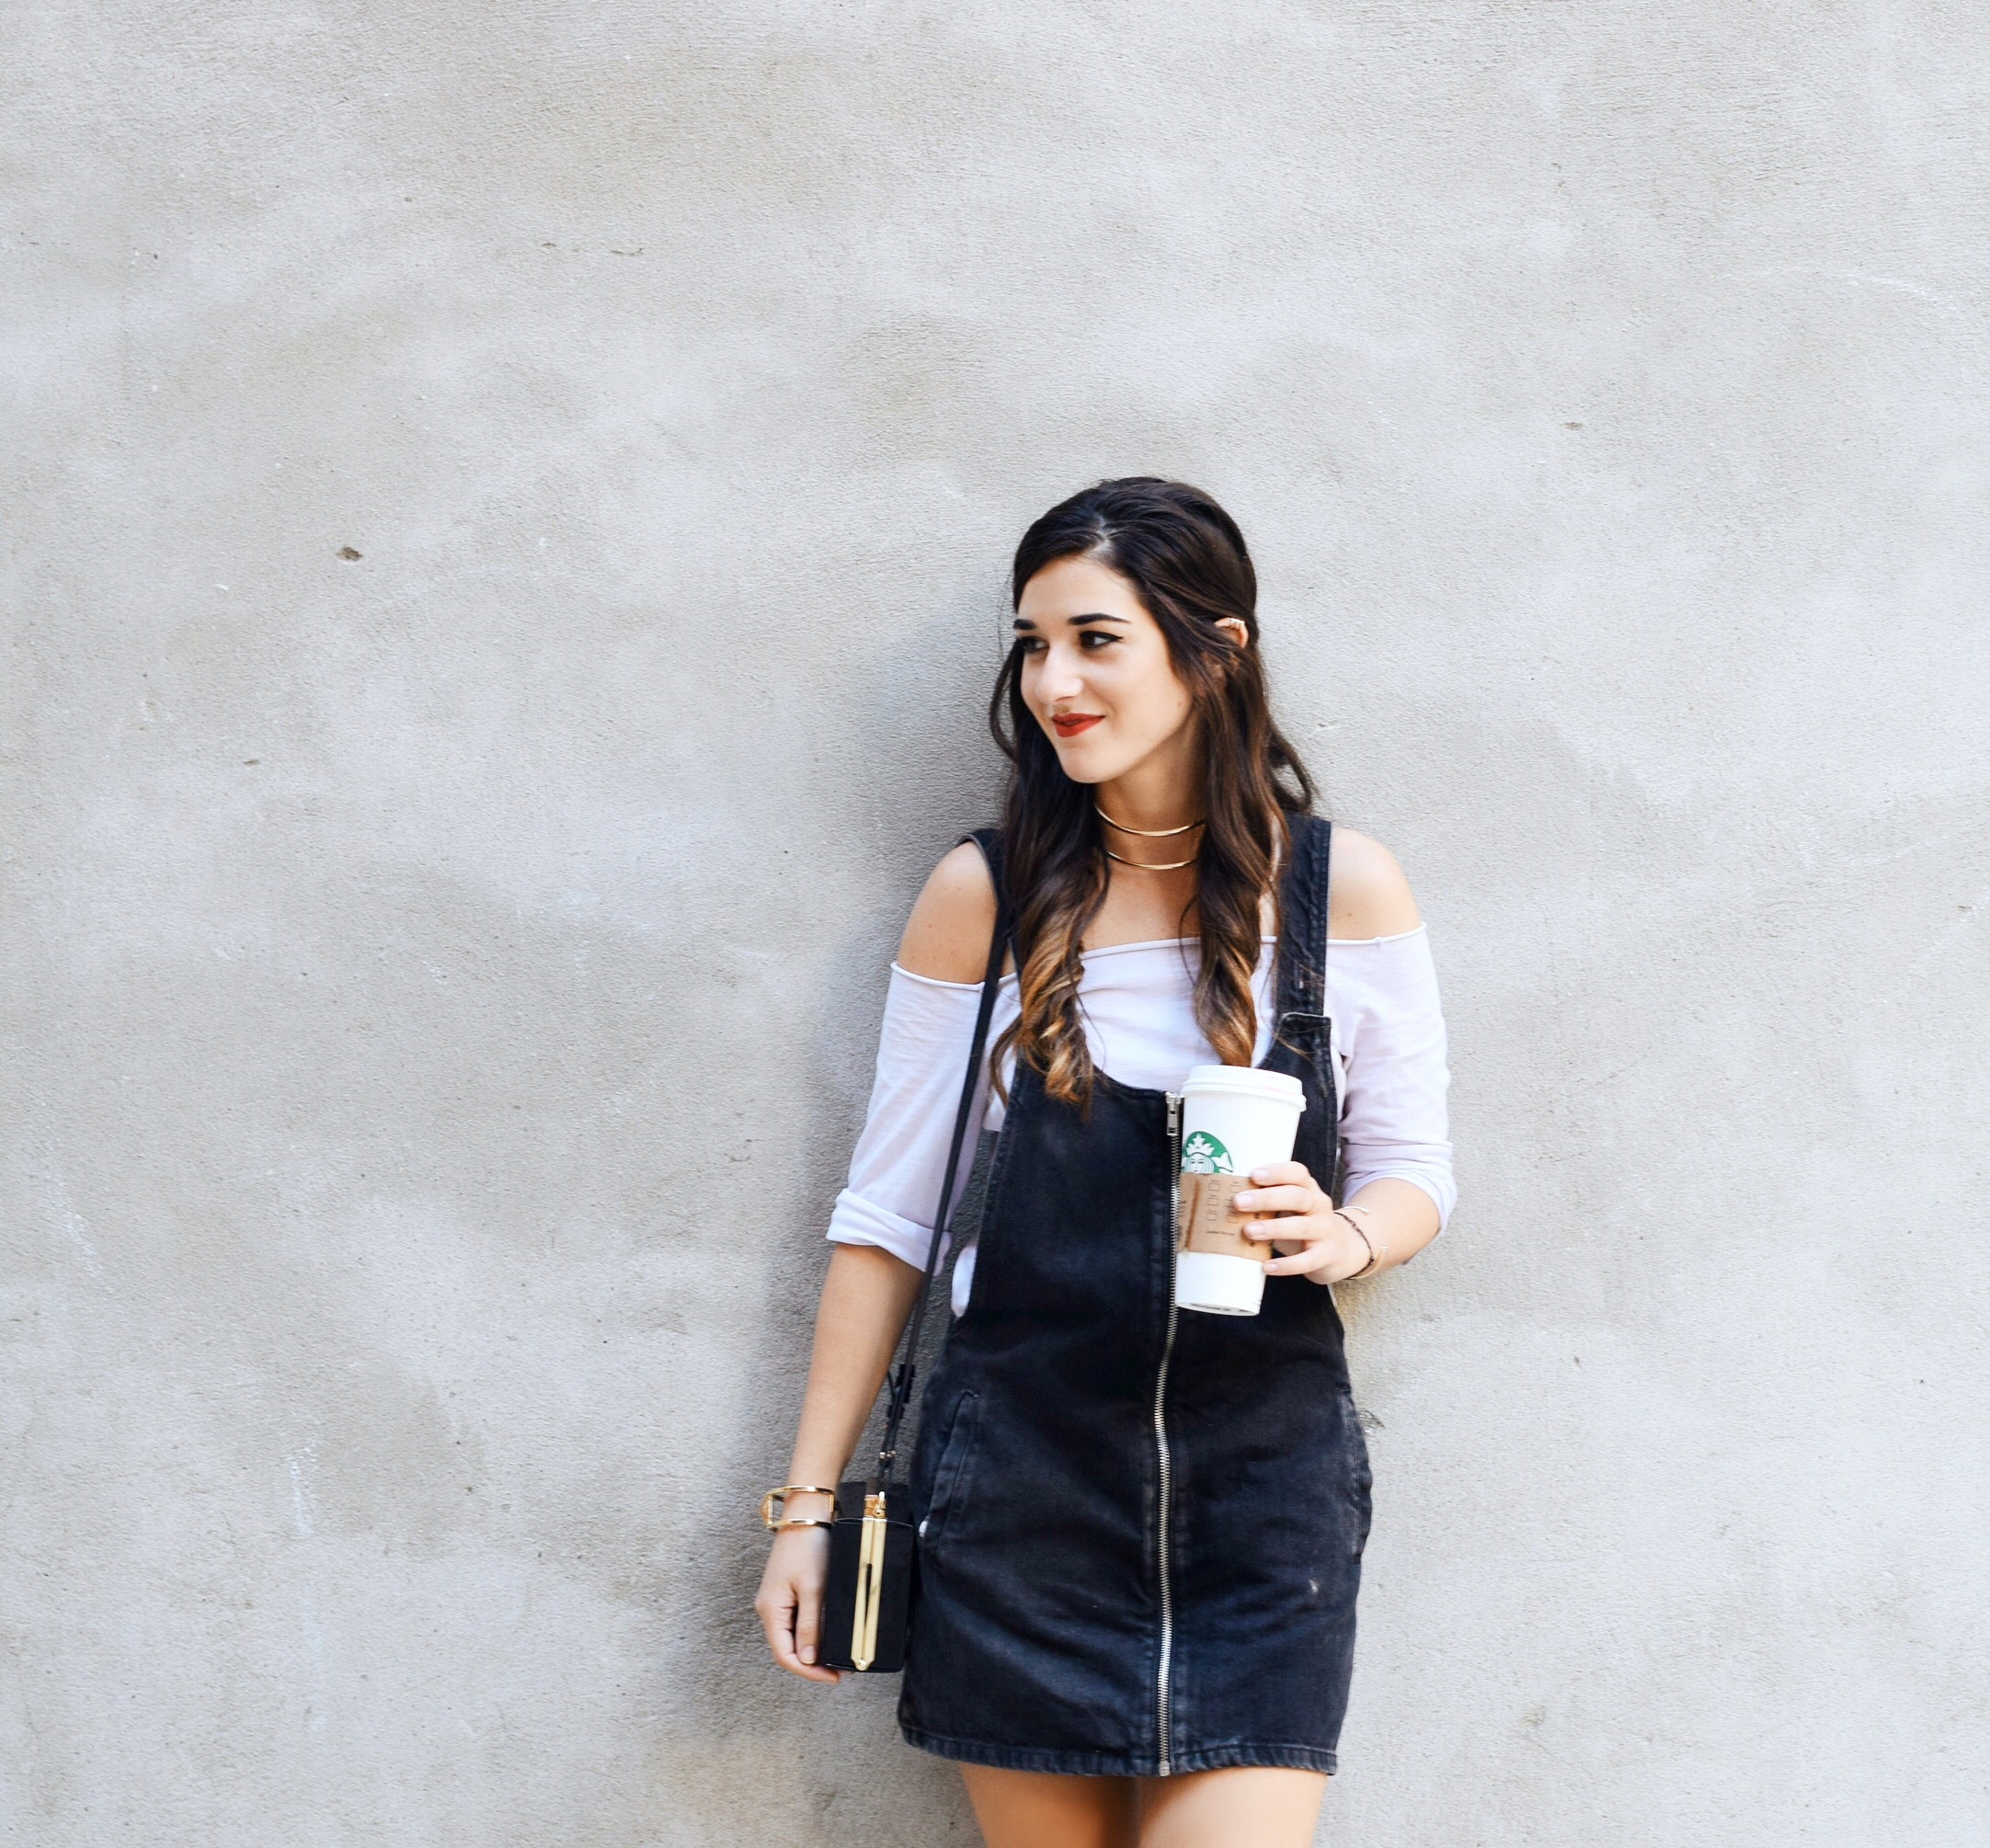 Jean Dress Overalls Off The Shoulder Top Louboutins & Love Fashion Blog Esther Santer Street Style NYC Hair Box Clutch Shoes Denim Gold Jewelry Model Girl Women Trendy Outfit OOTD Bag Inspo Shop Fall Collar Necklace Nordstrom Zipper Black Booties Zara.JPG